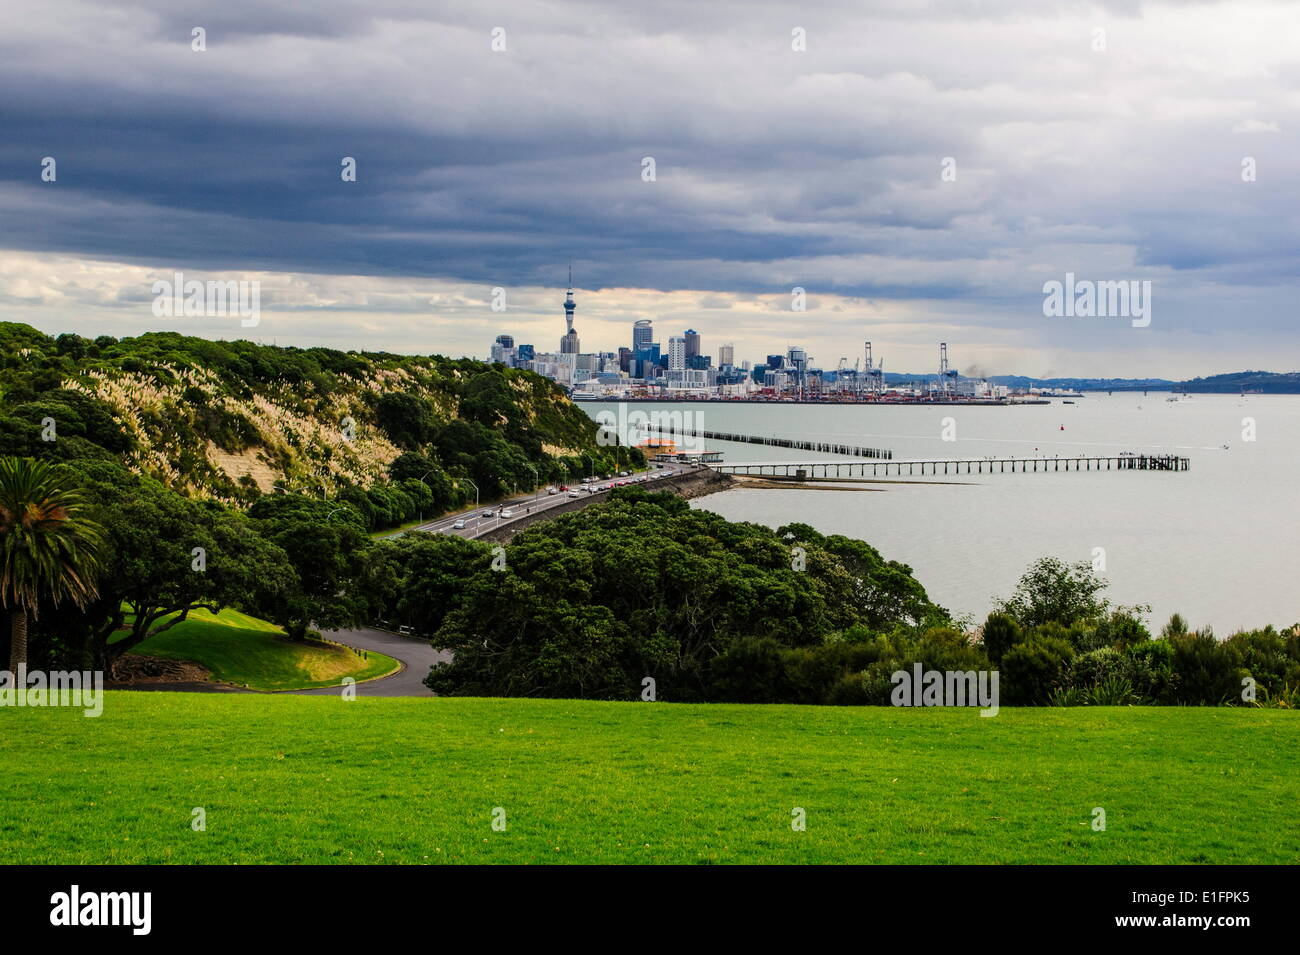 View from the Michael Joseph Savage memorial at the Tamaki Drive over the skyline of Auckland, North Island, New Zealand - Stock Image